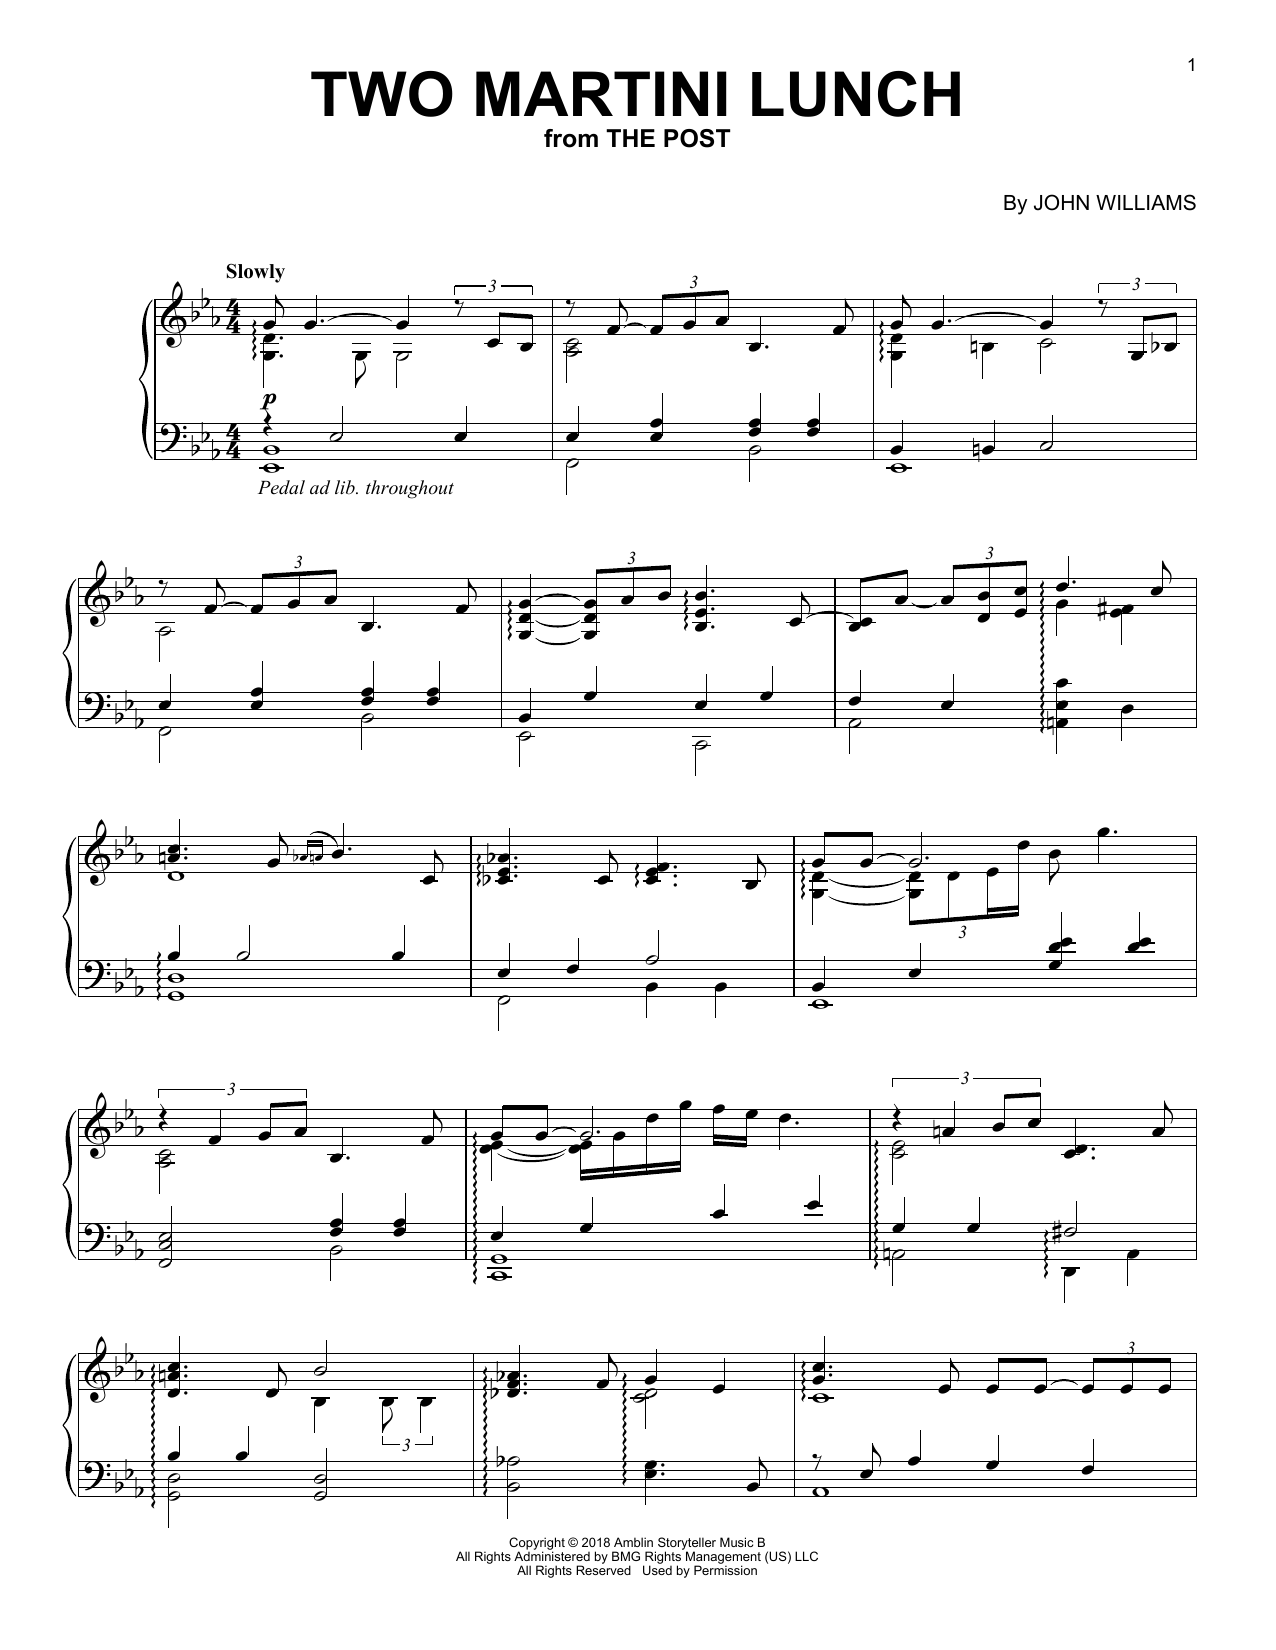 Download John Williams 'Two Martini Lunch (from The Post)' Digital Sheet Music Notes & Chords and start playing in minutes